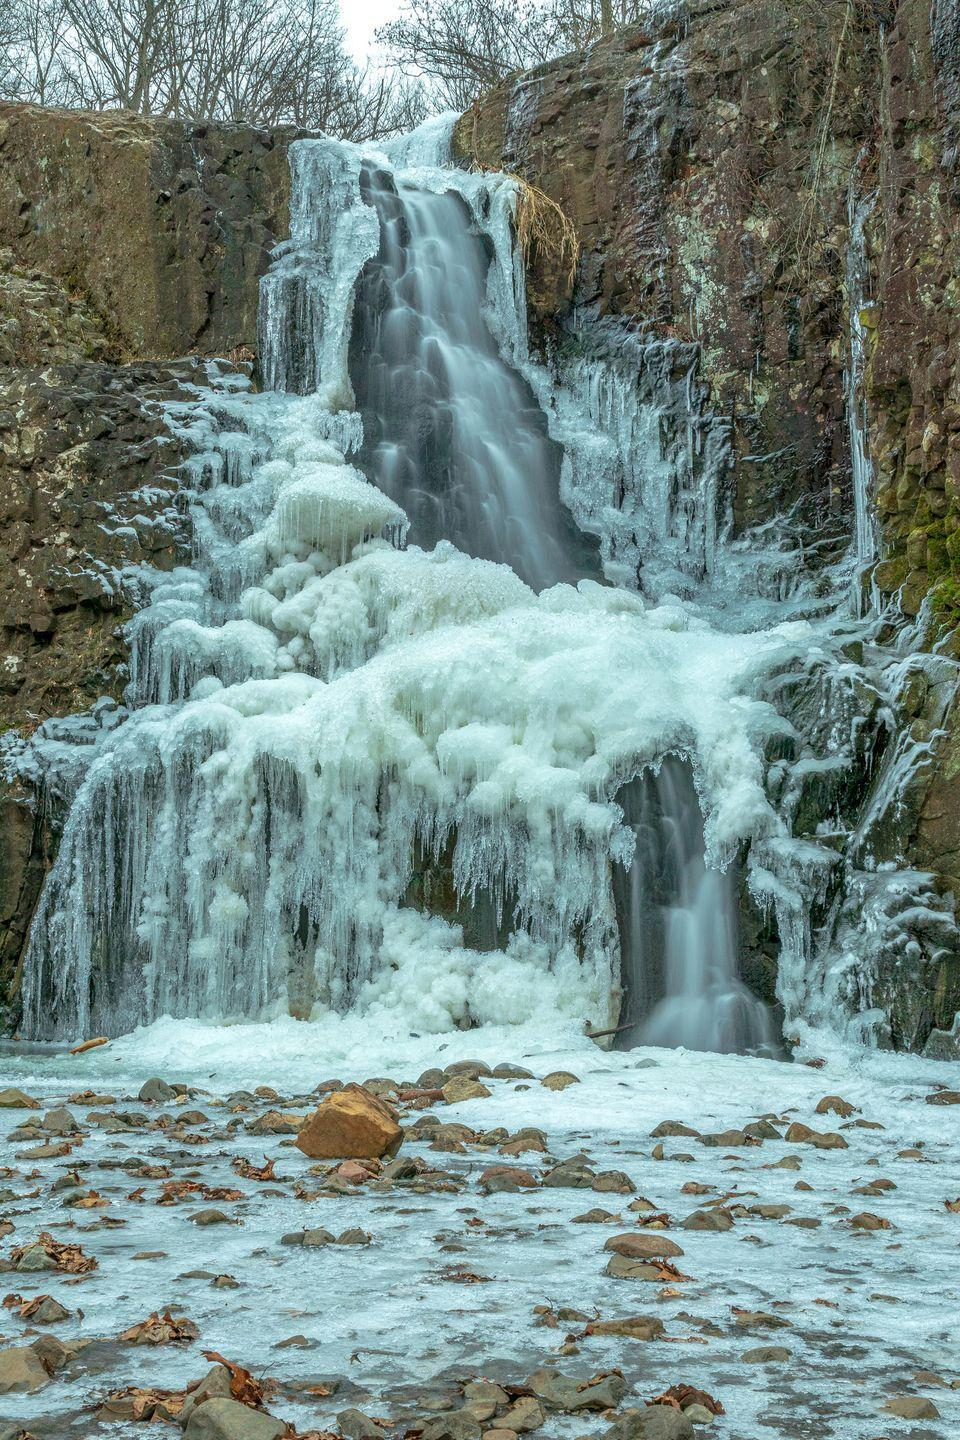 <p>It's so interesting how some of the water still flows while some parts freeze to create these precariously stunning formations. </p>